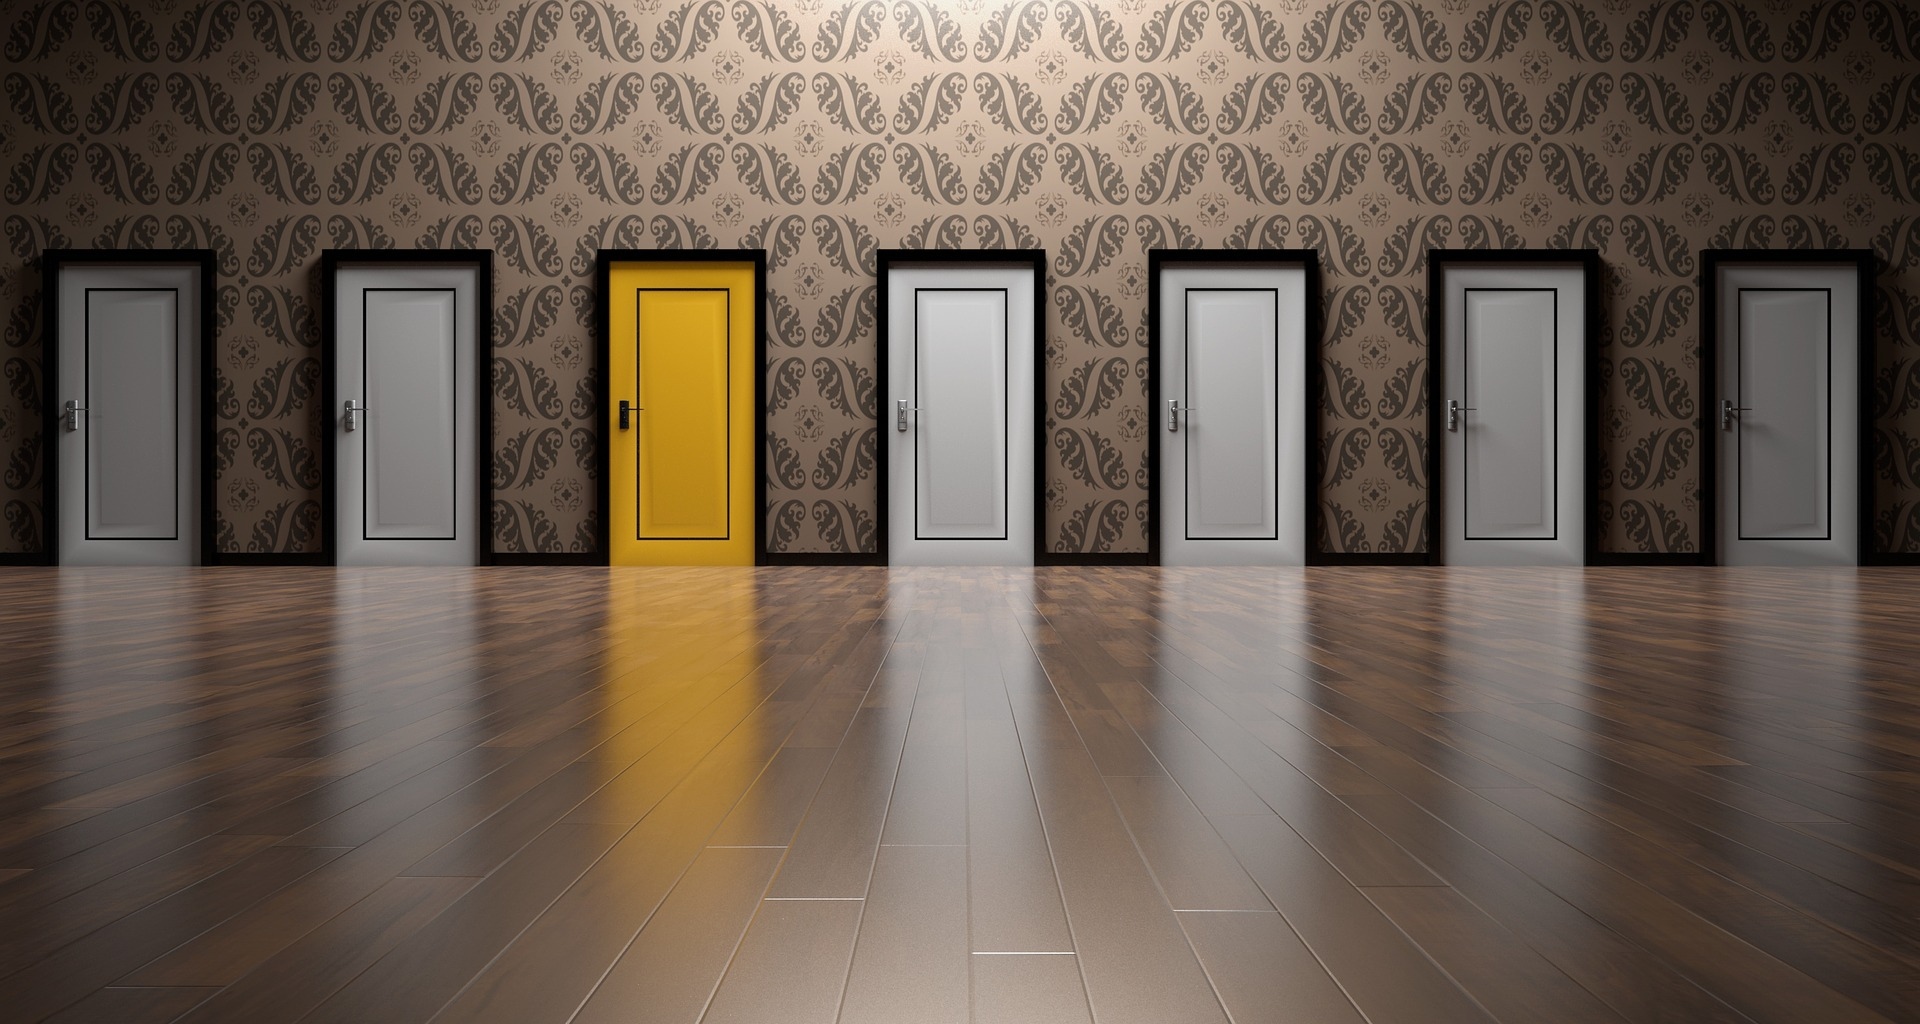 ultiple job offers signified by a yellow doors in between 6 white doors